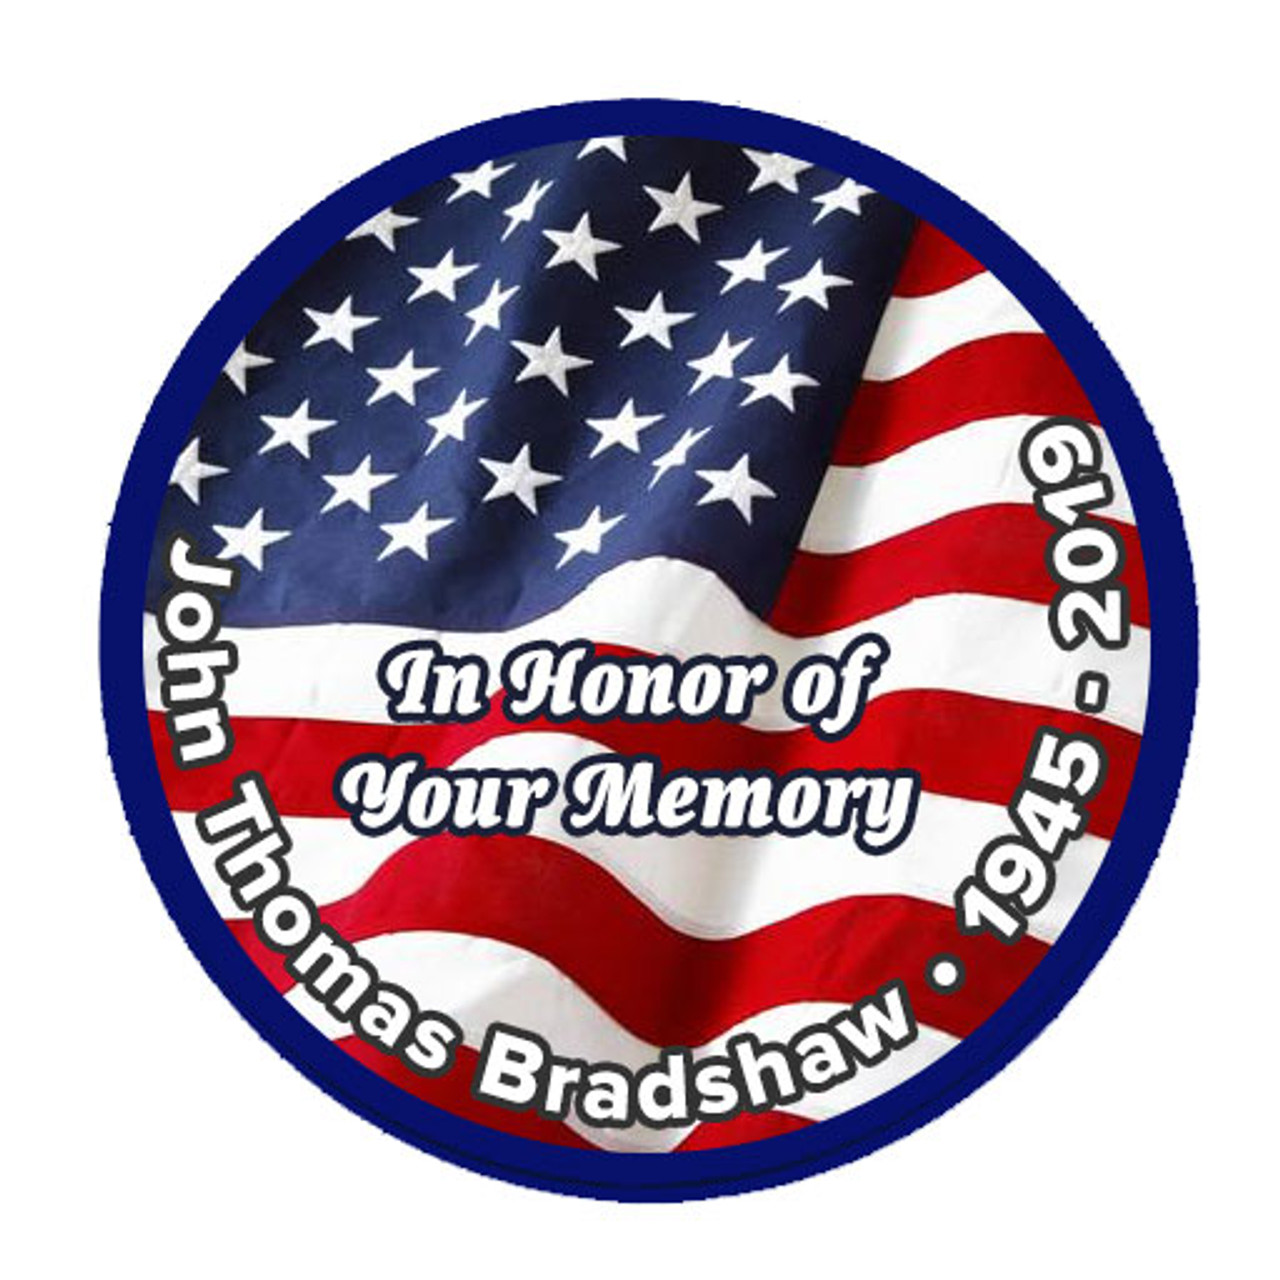 Support Our Troops Round Memorial Patch Patriotic Patches